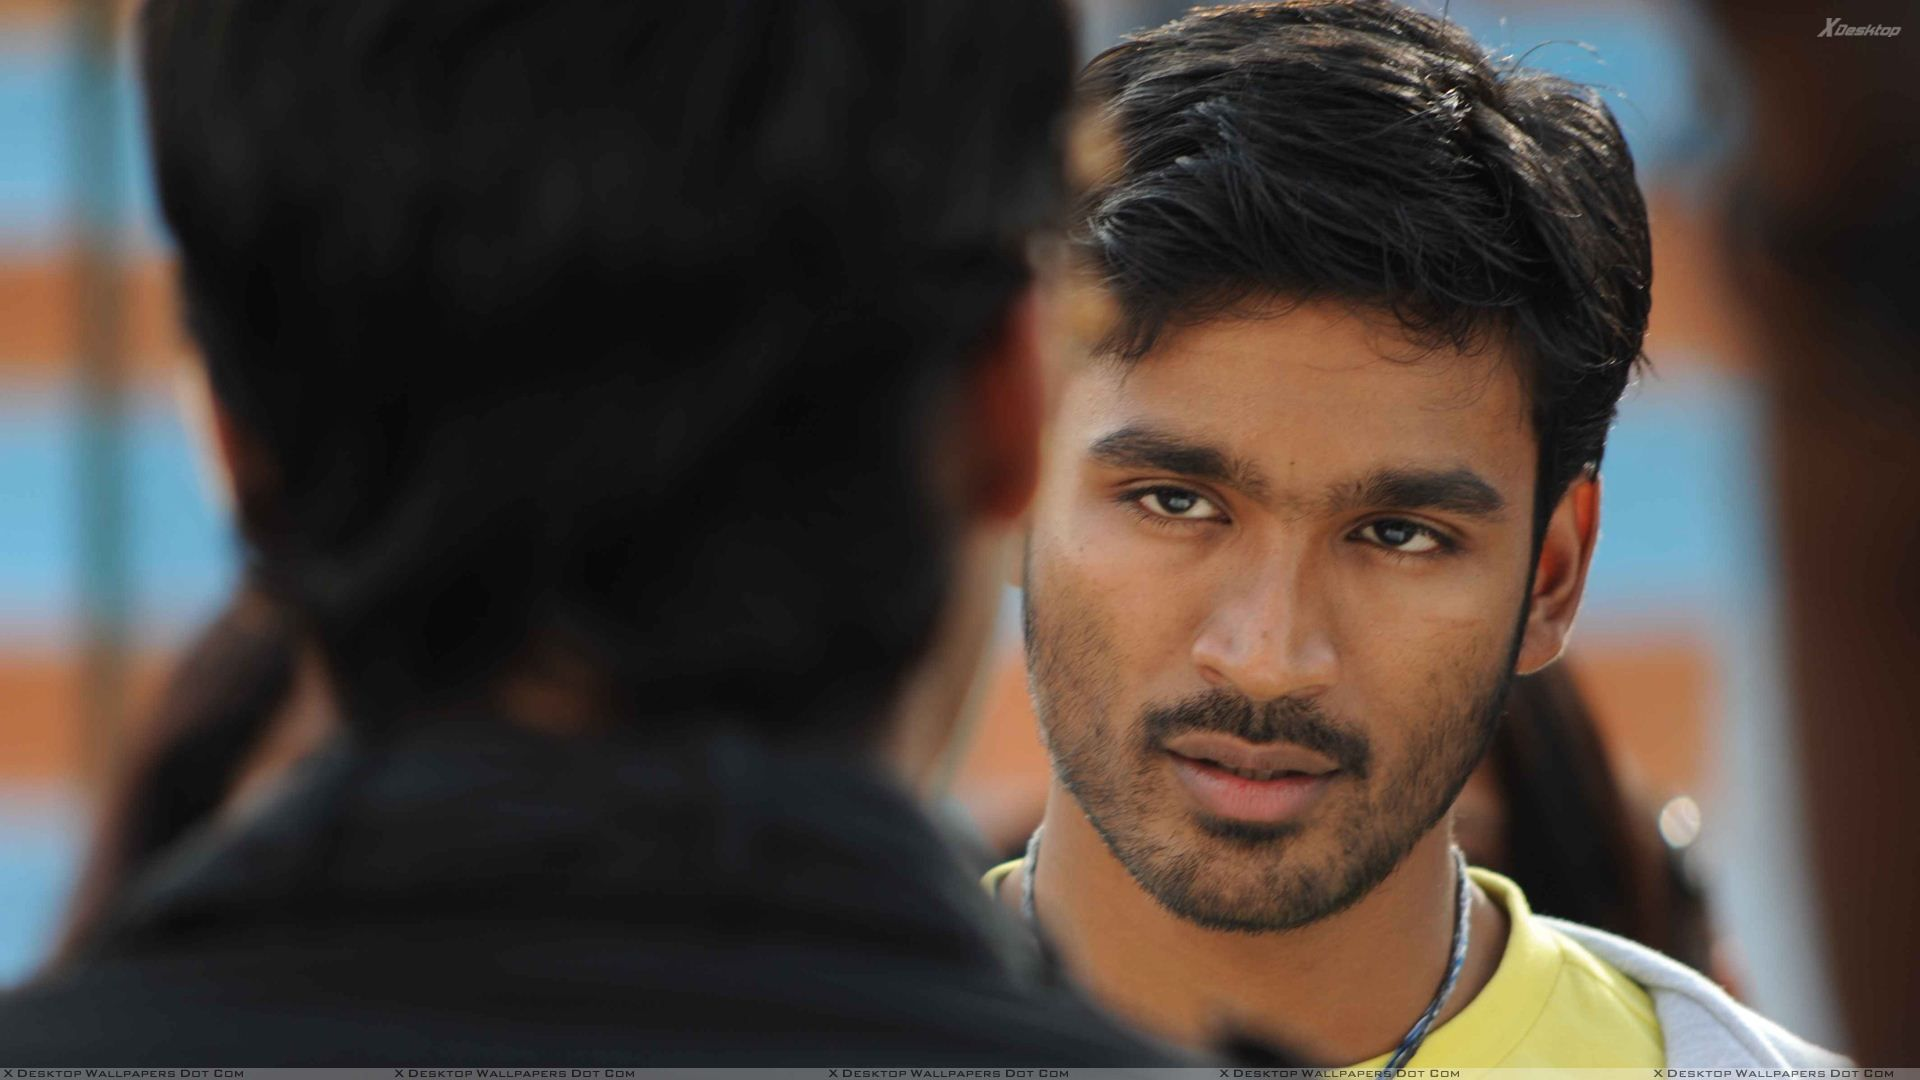 dhanush wallpapers, photos images in hd | epic car wallpapers